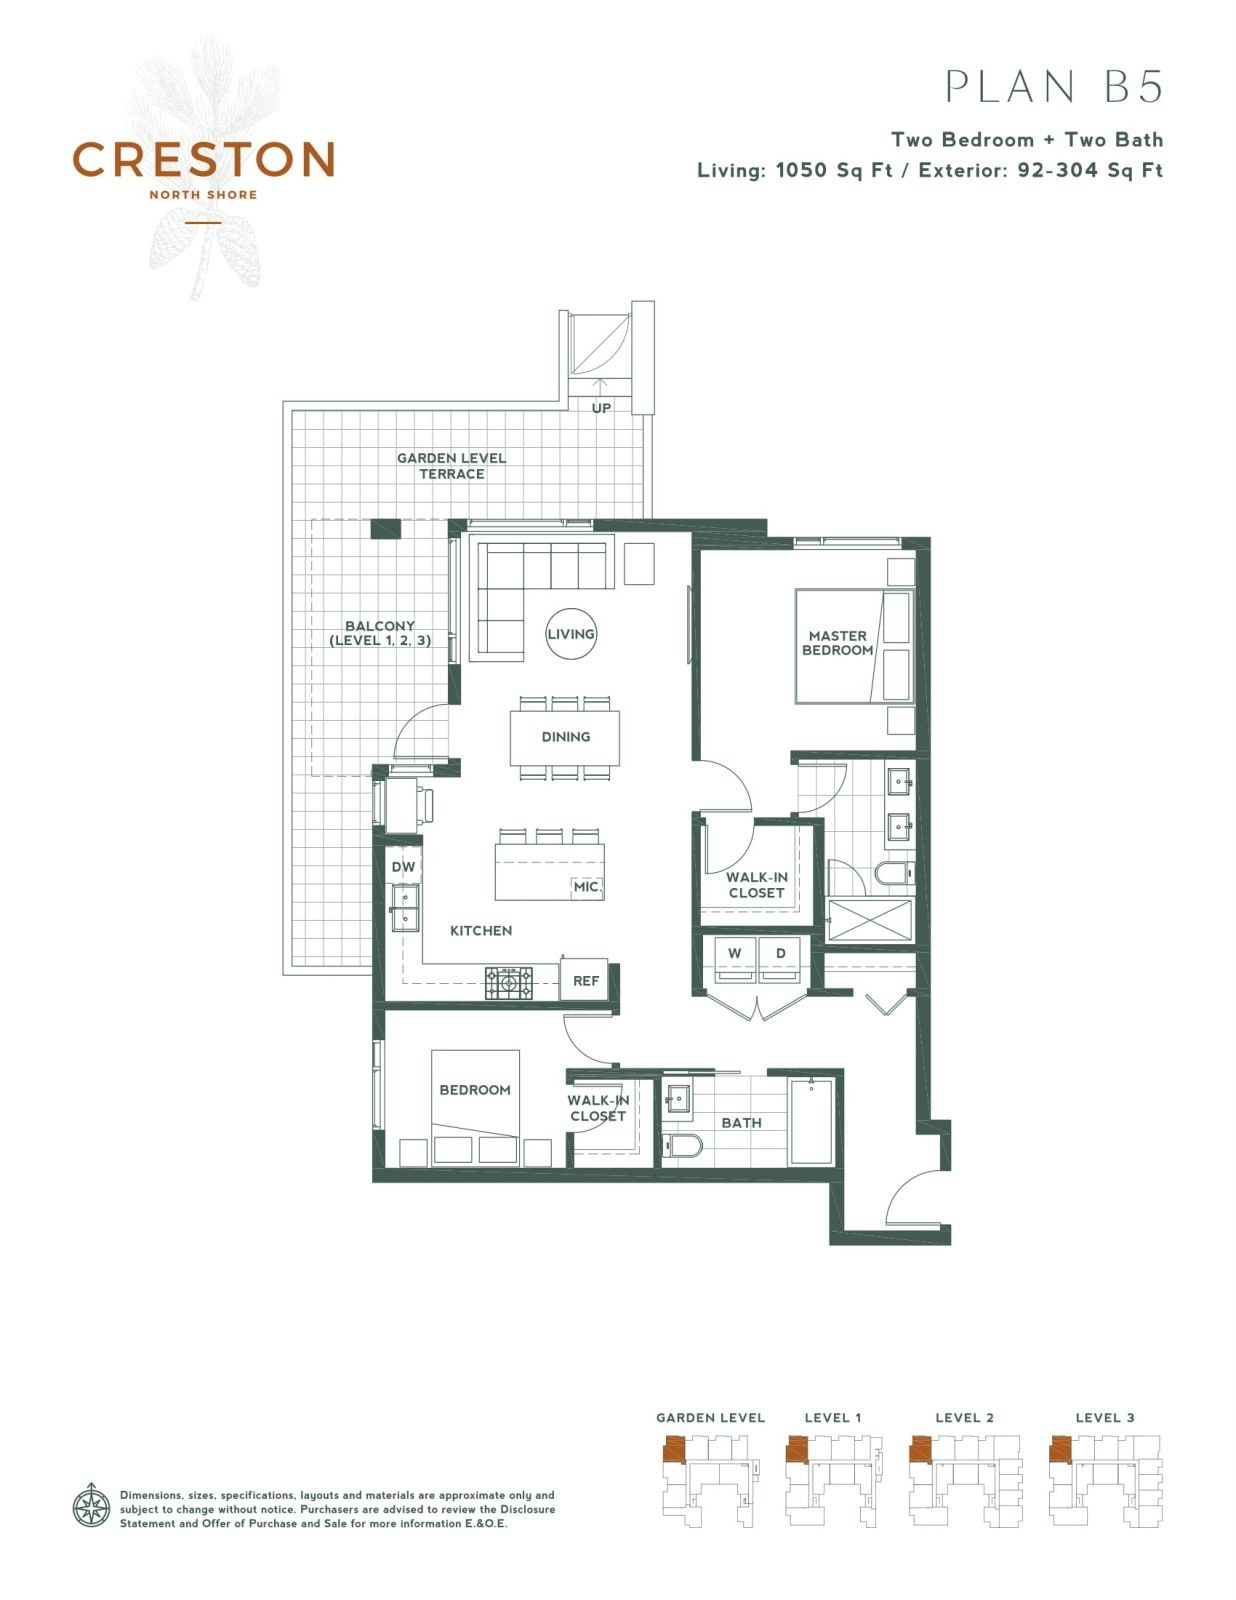 Creston_Floorplans_DGTL-11-1.jpg